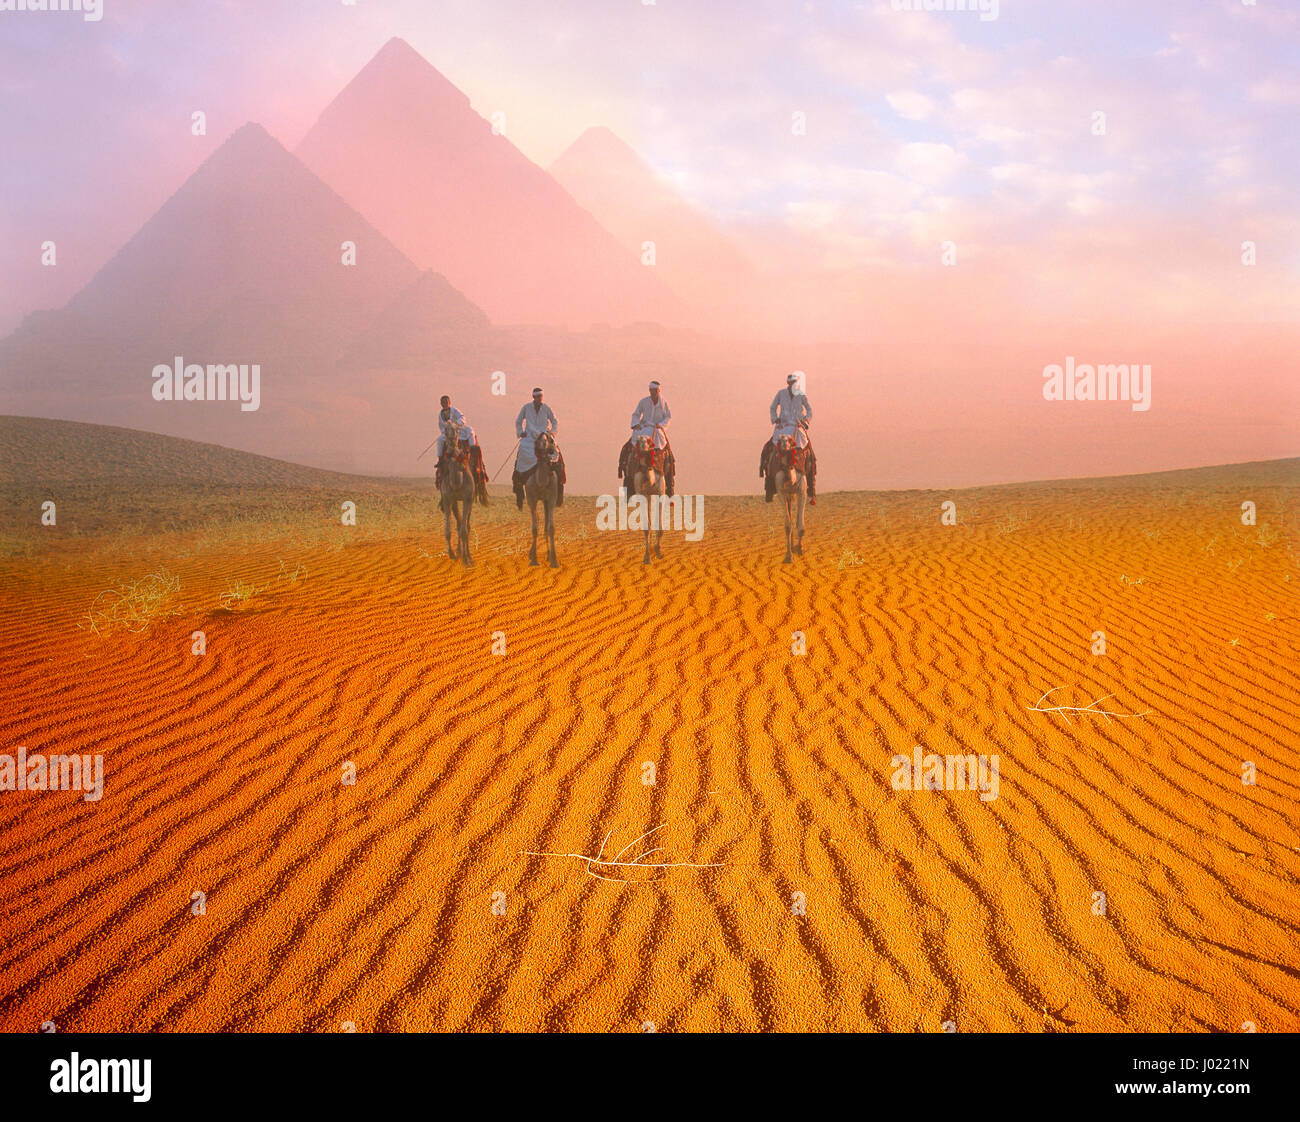 Pyramides et camelriders à l'aube, Giza, Le Caire, Egypte Photo Stock